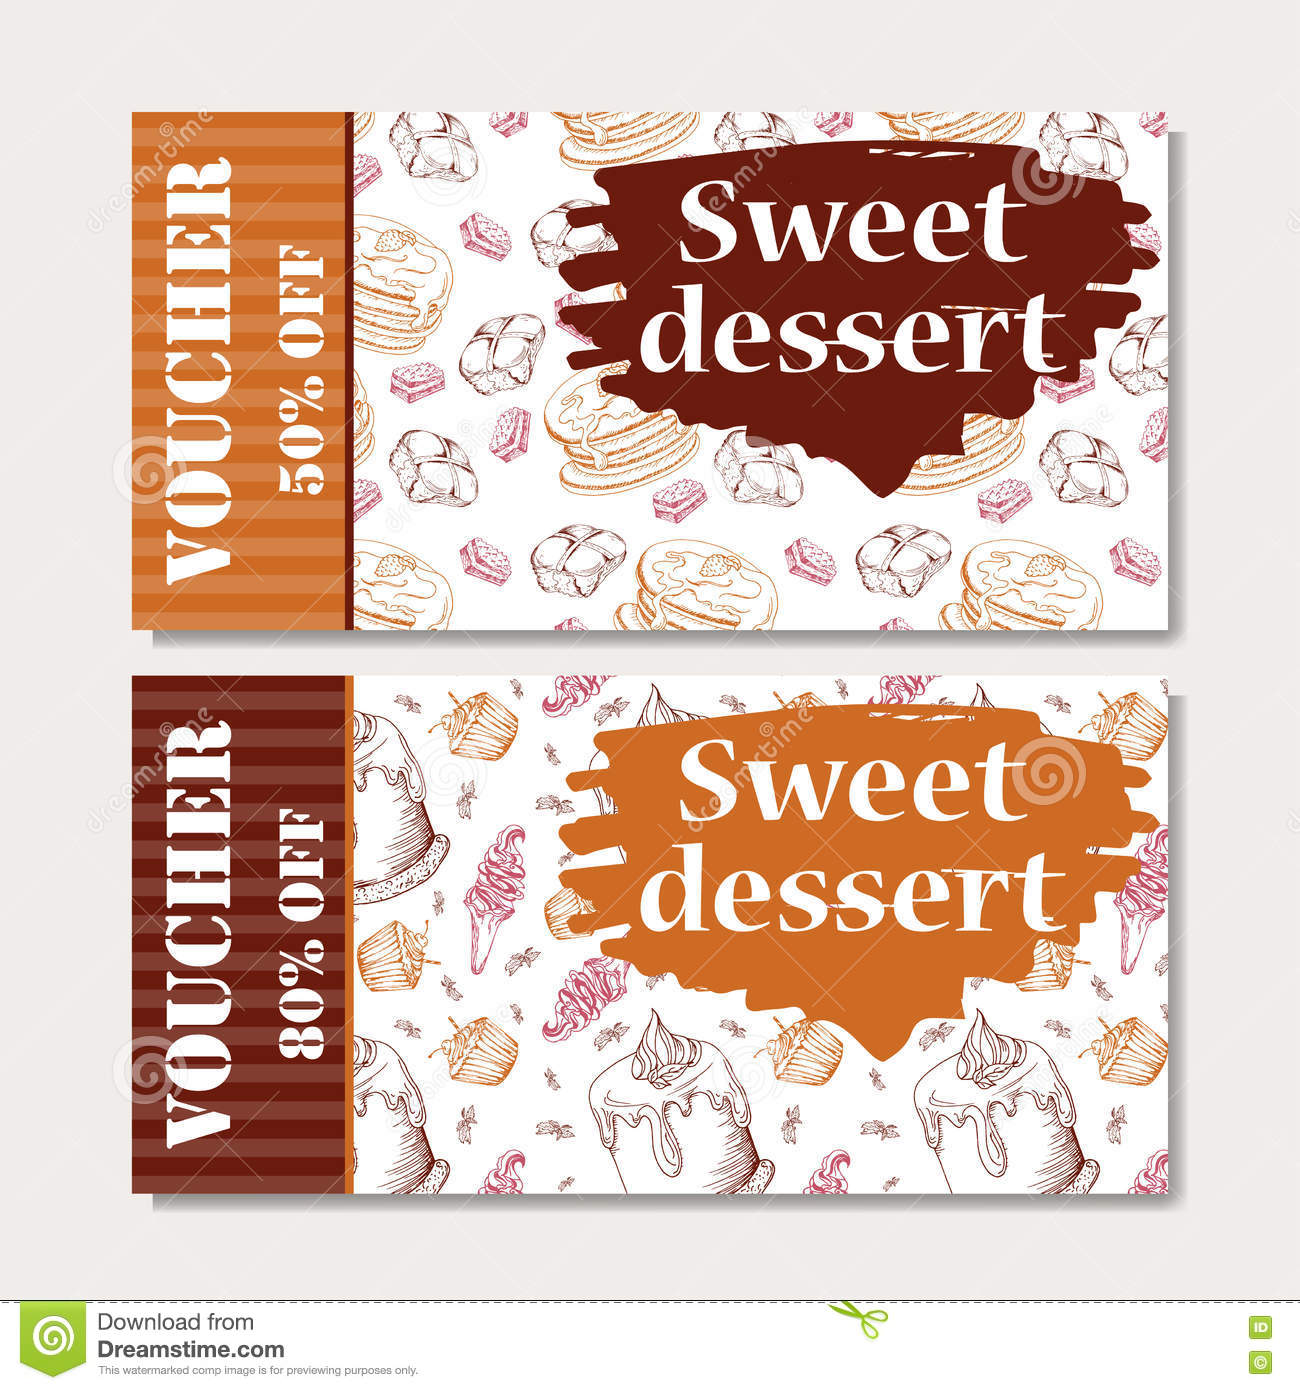 Loveless cafe discount coupons